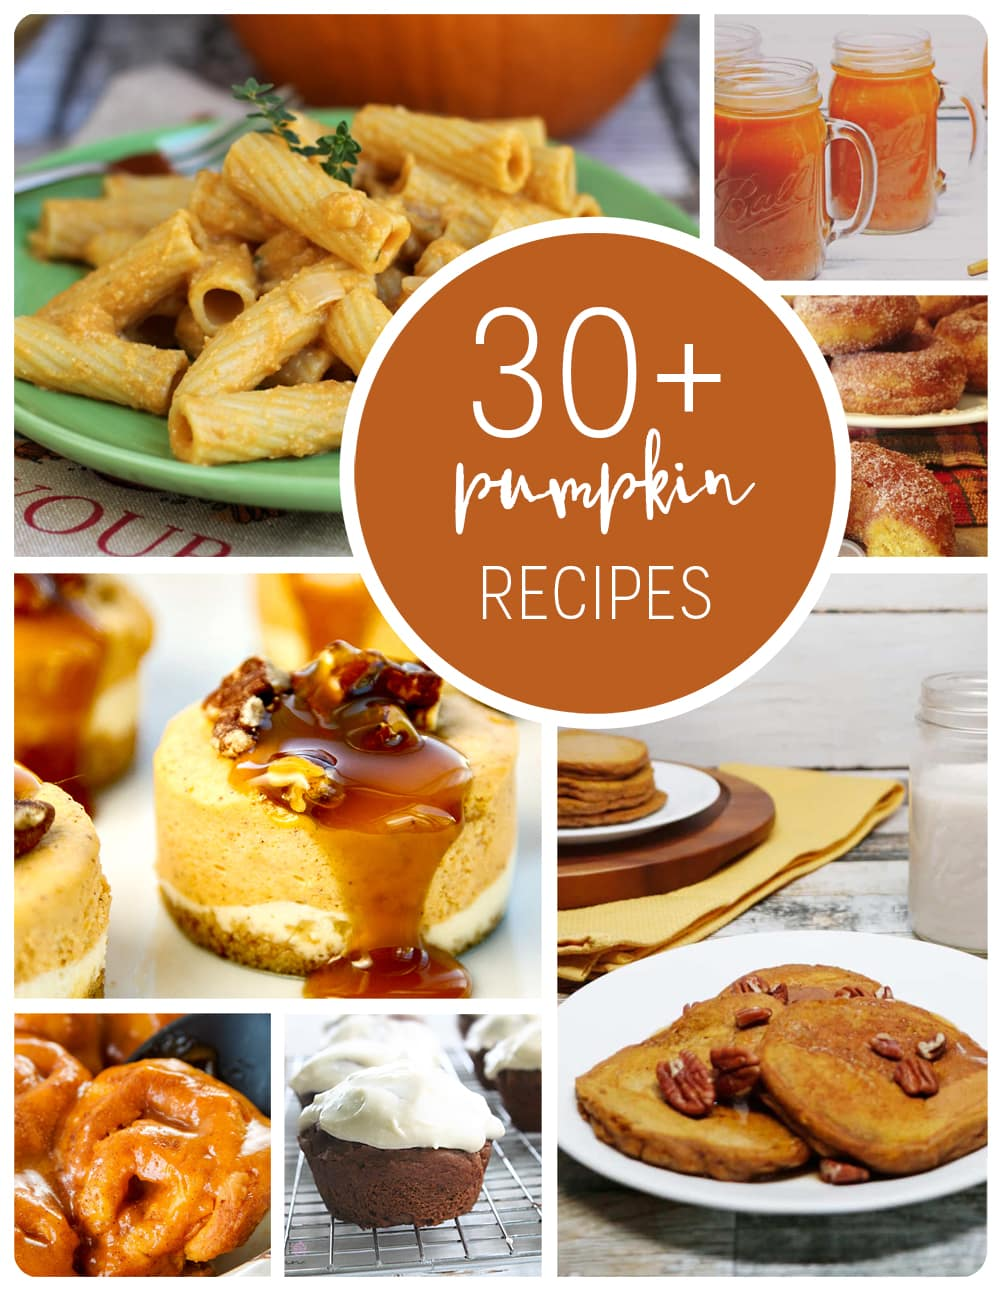 If you're looking for easy pumpkin recipes, I've got you covered with these 30+ delicious pumpkin recipes. From canned pumpkin recipes to fresh pumpkin recipes, sweet pumpkin recipes to savory pumpkin recipes - there's something for everyone.  #PumpkinDessert #FreshPumpkinRecipe #SavoryPumpkinRecipe #Pumpkin #Fall #FallRecipe #FallDessert #FallDinner #Autumn #AutumnRecipe